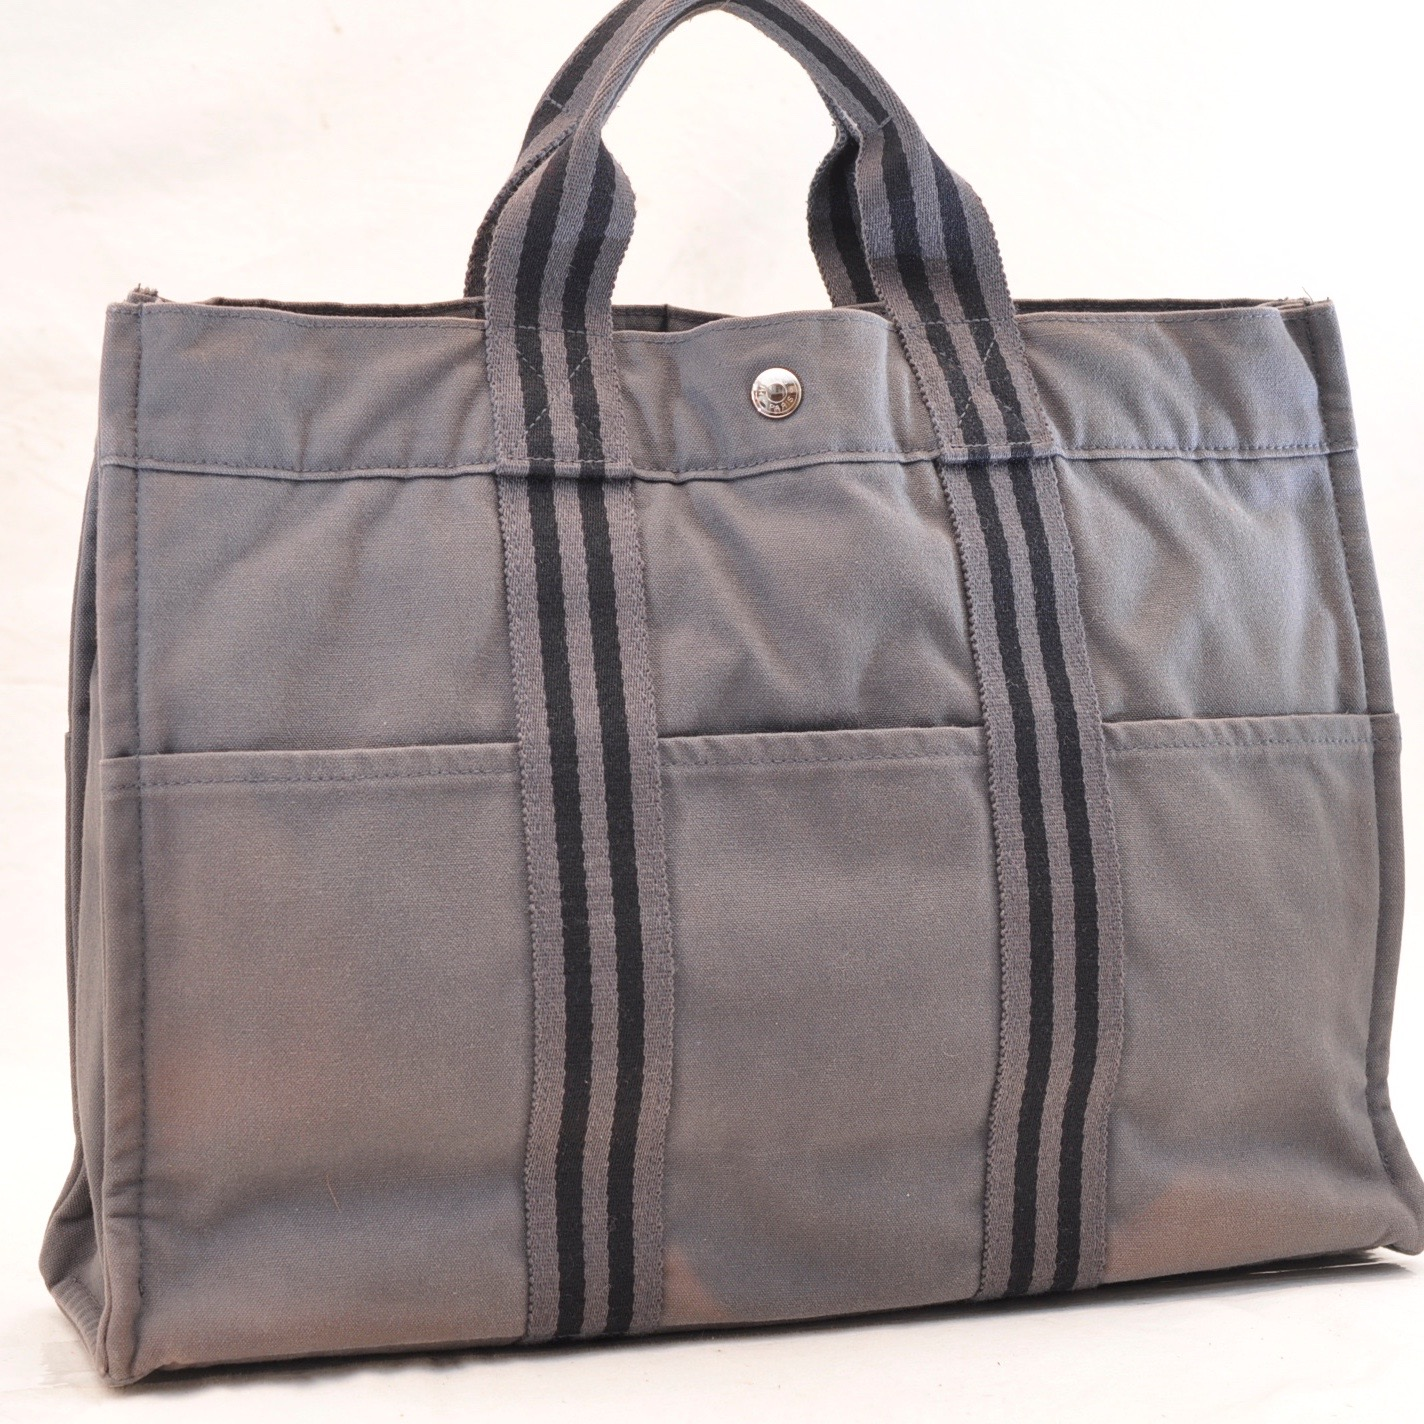 HERMES Fourre Tout MM Tote Bag Grey Cotton Auth 5440 – Brand Street c0ee531921